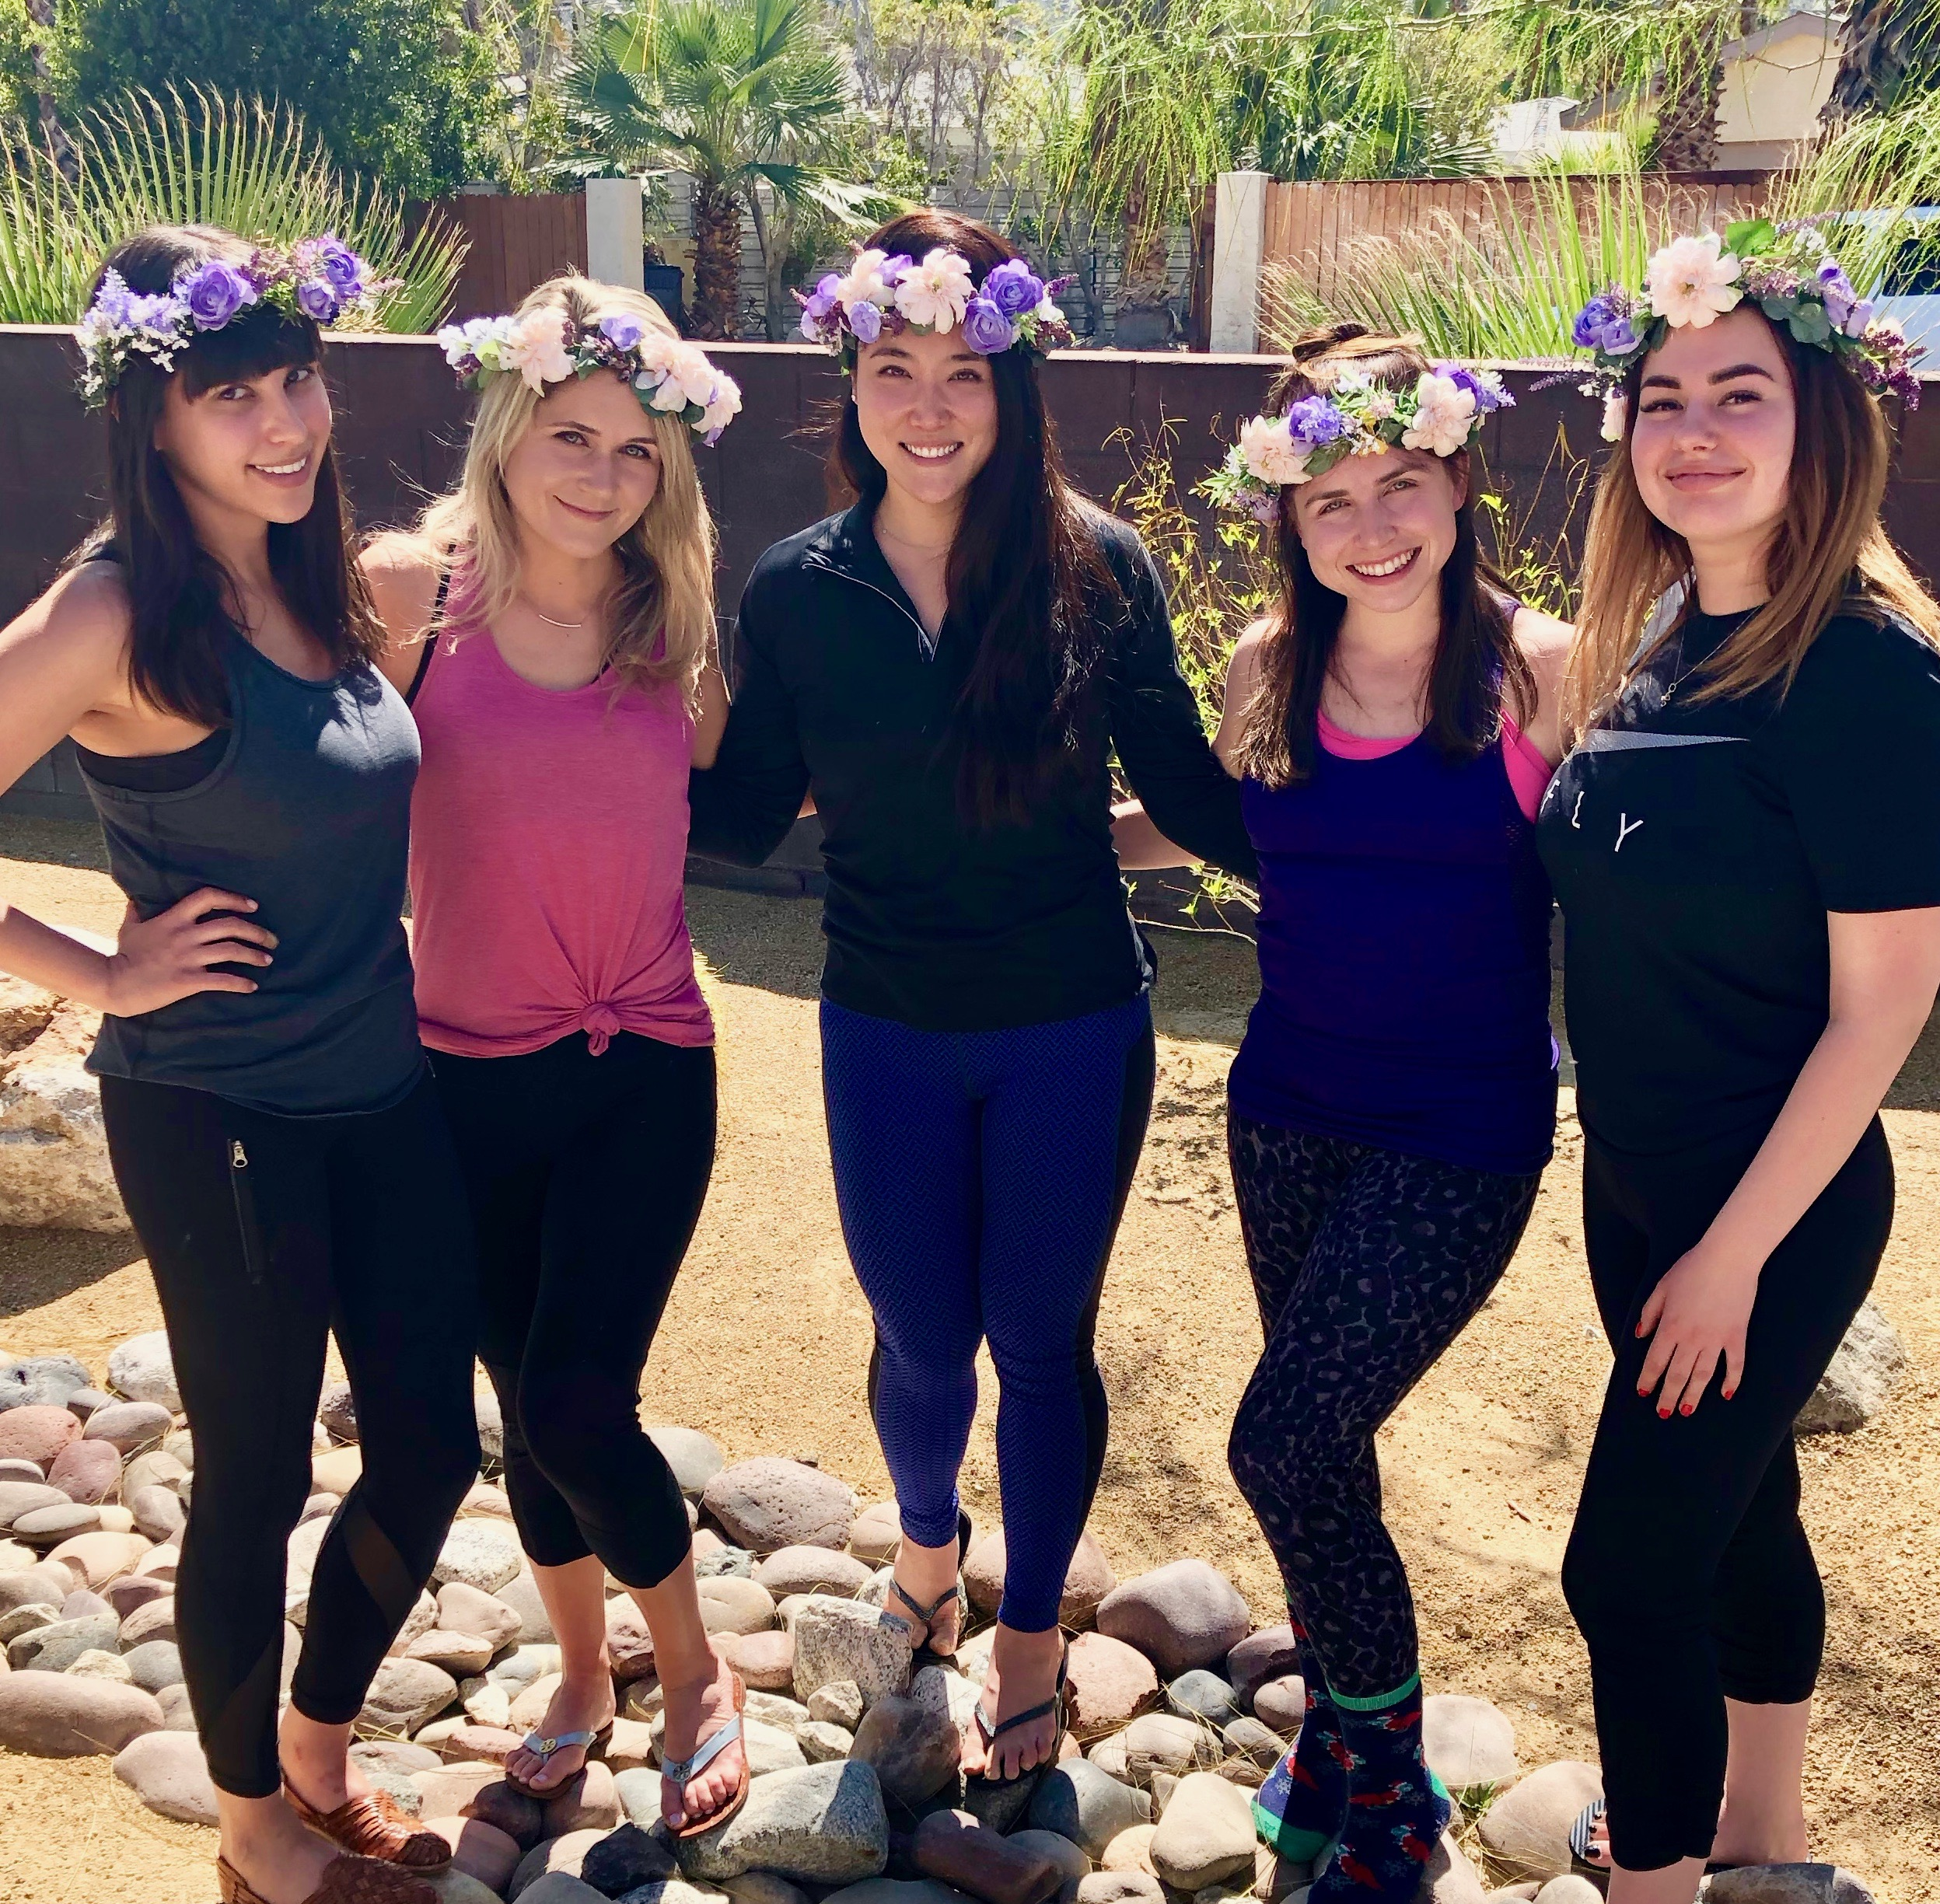 palm springs things to do for your bachelorette party